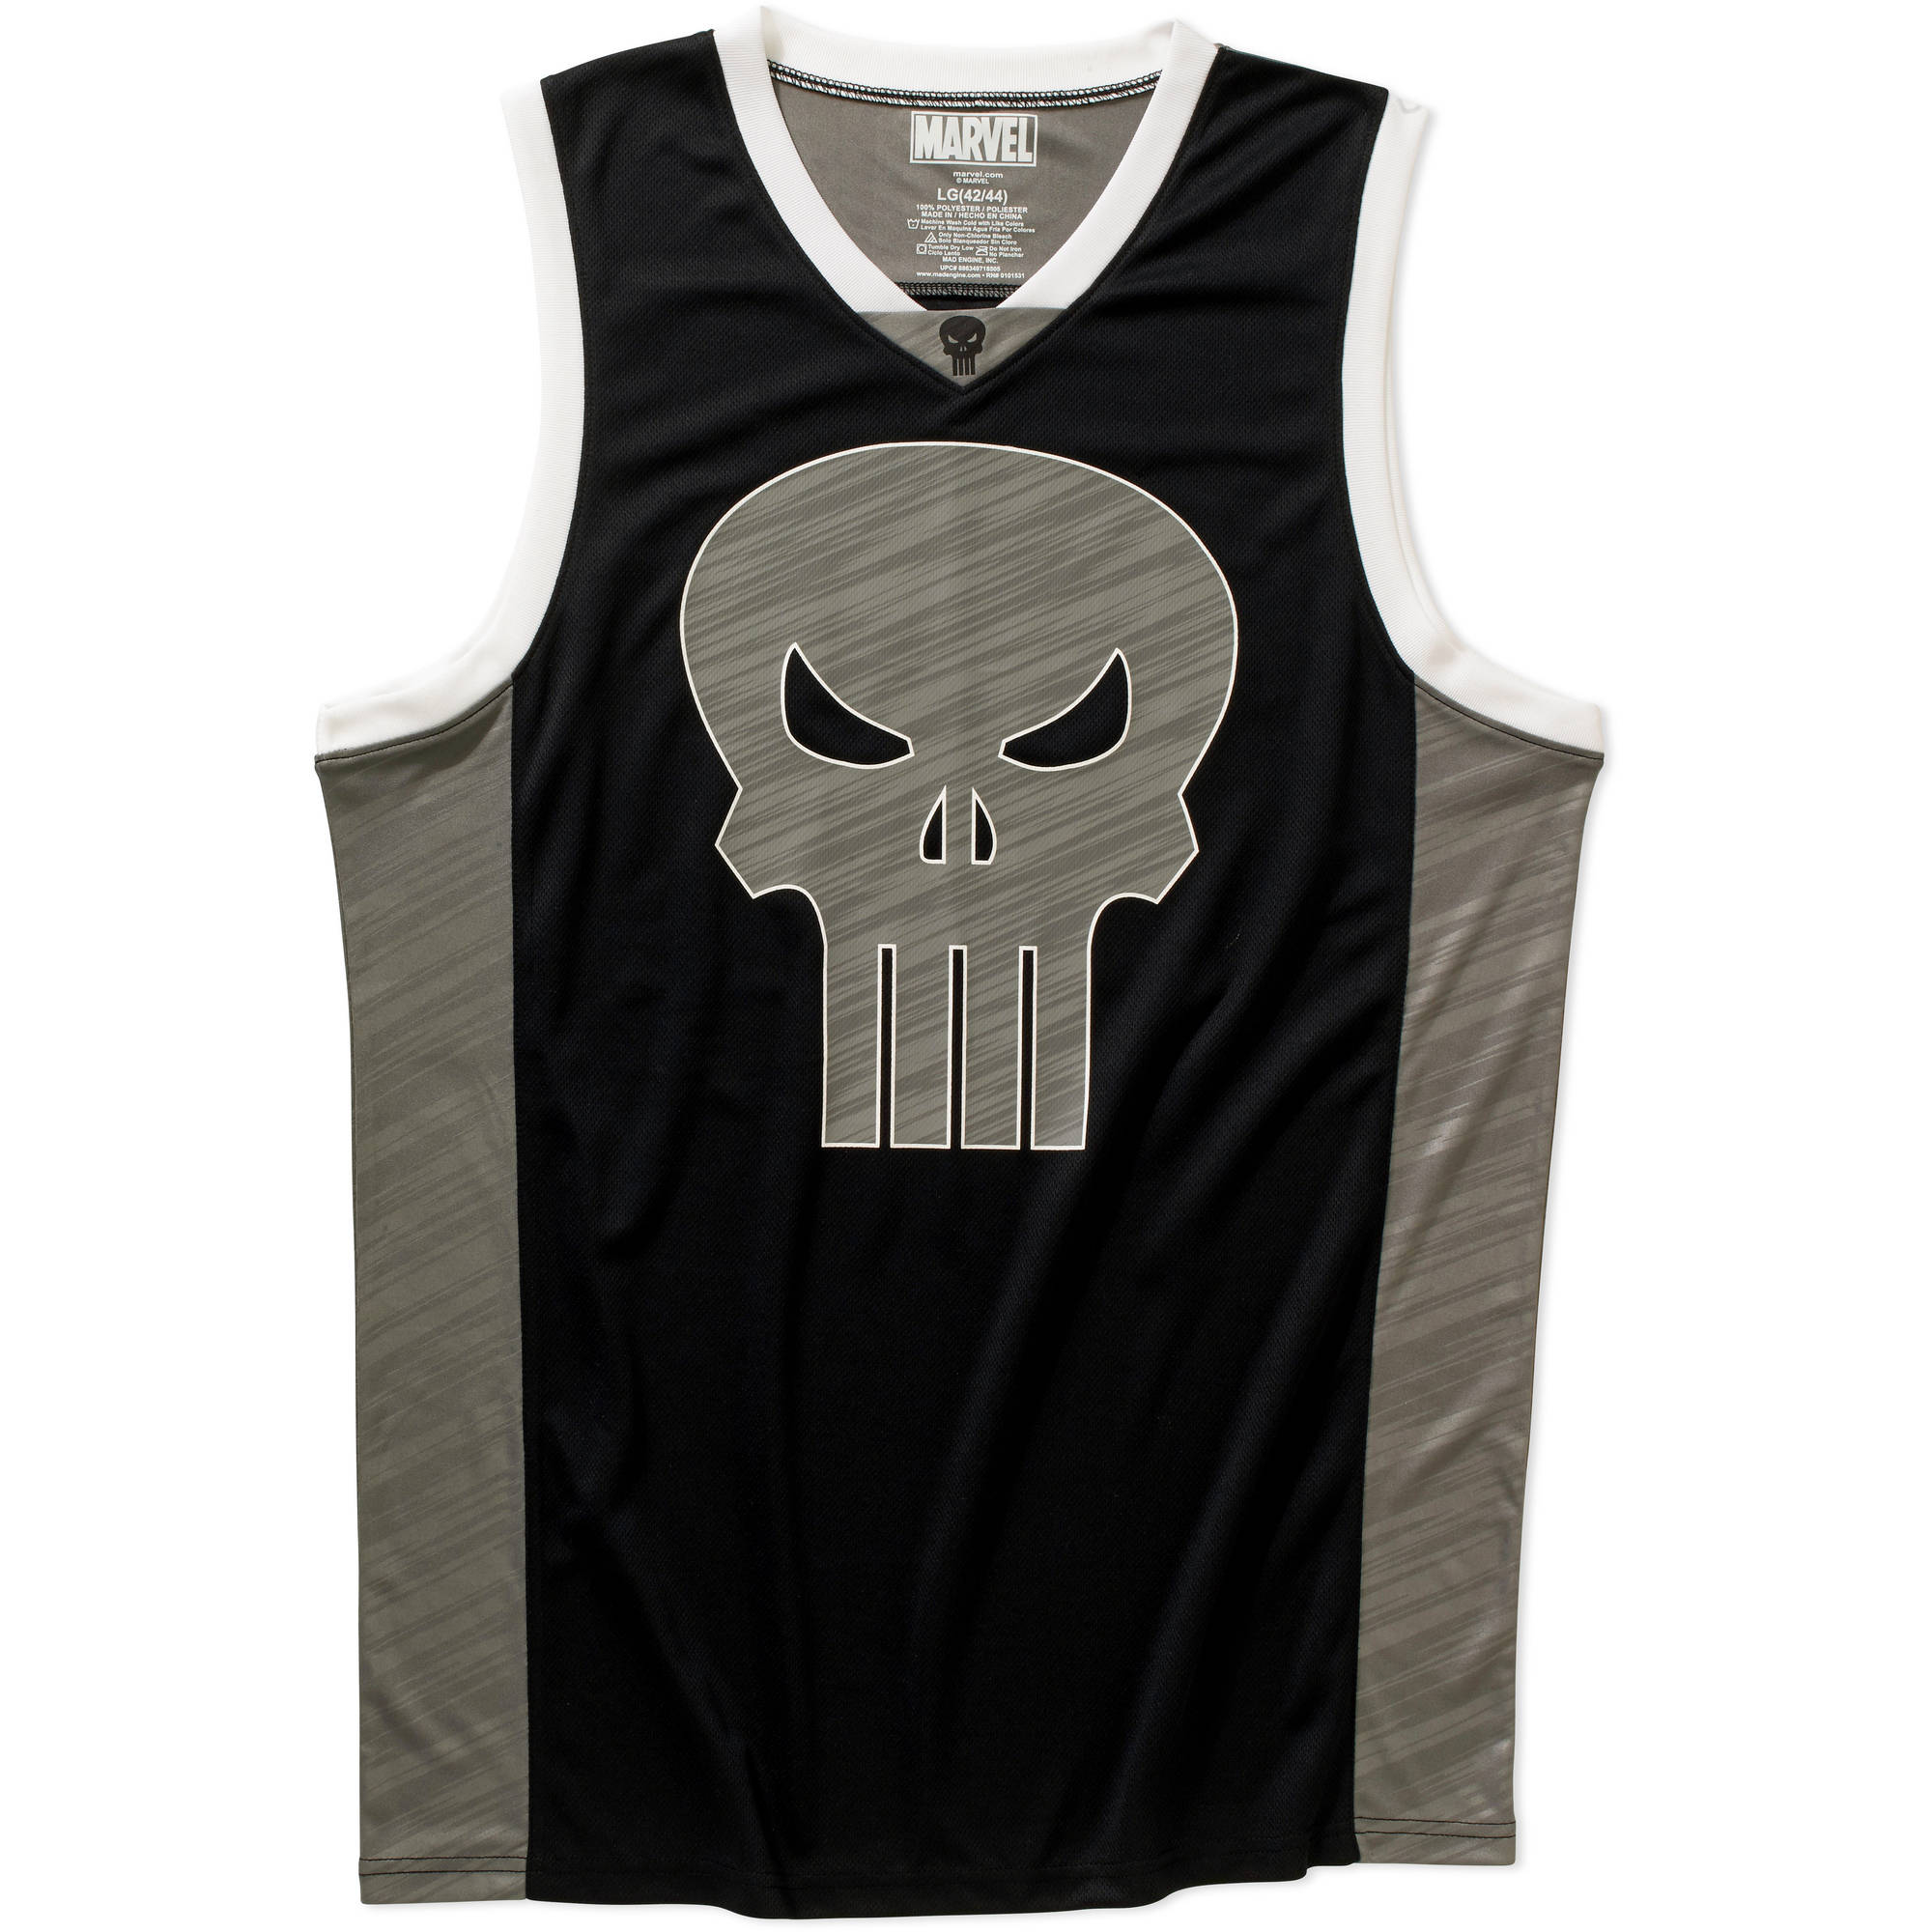 Punisher Mens Basketball Jersey Tank